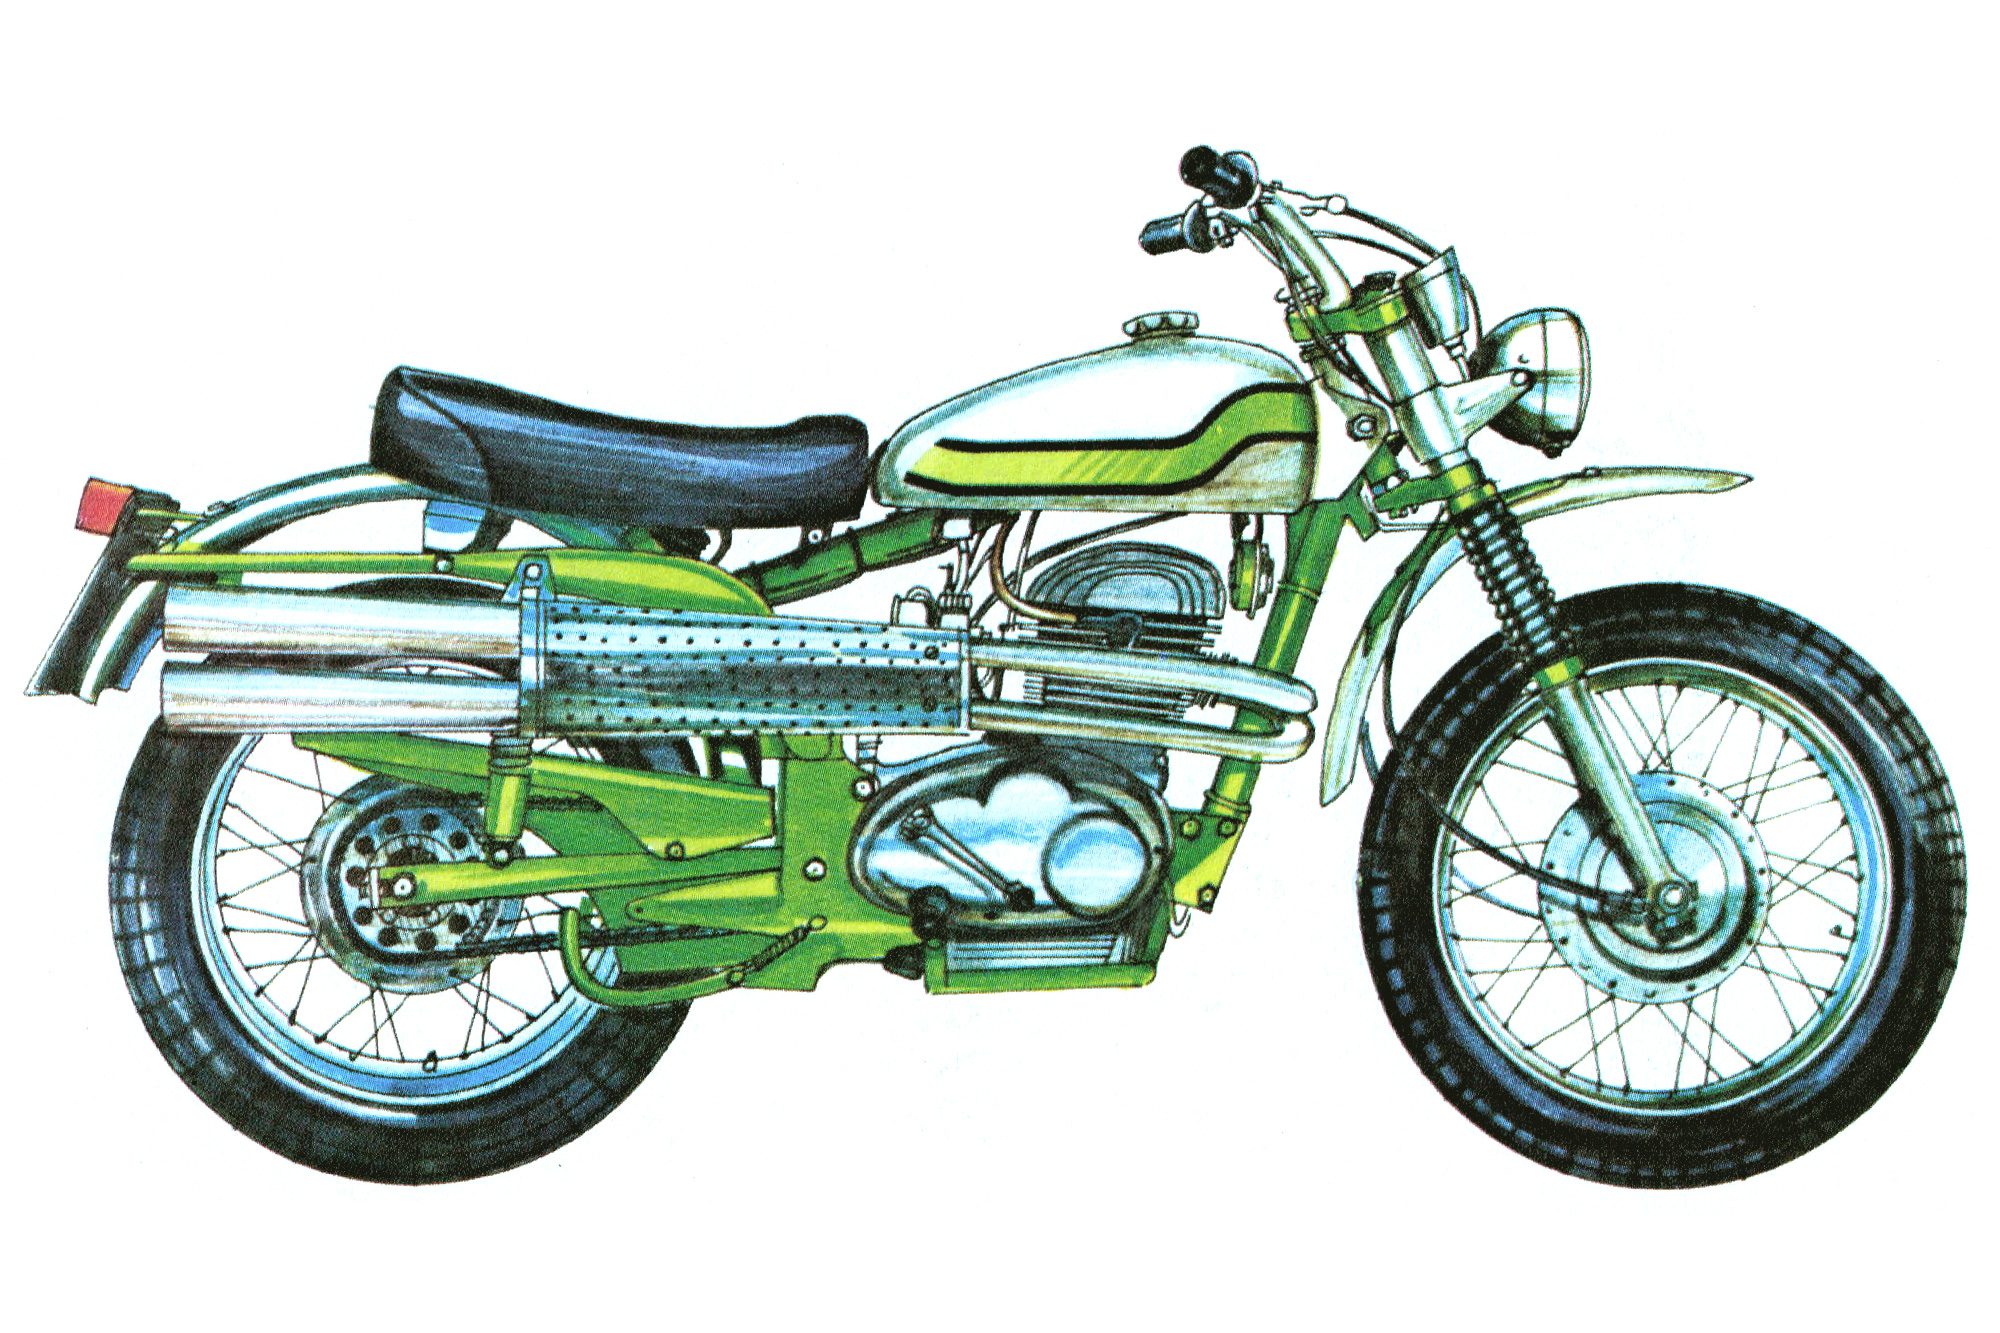 Illustration of a 1970s Aussie enduro motorcycle with scrambler pipes